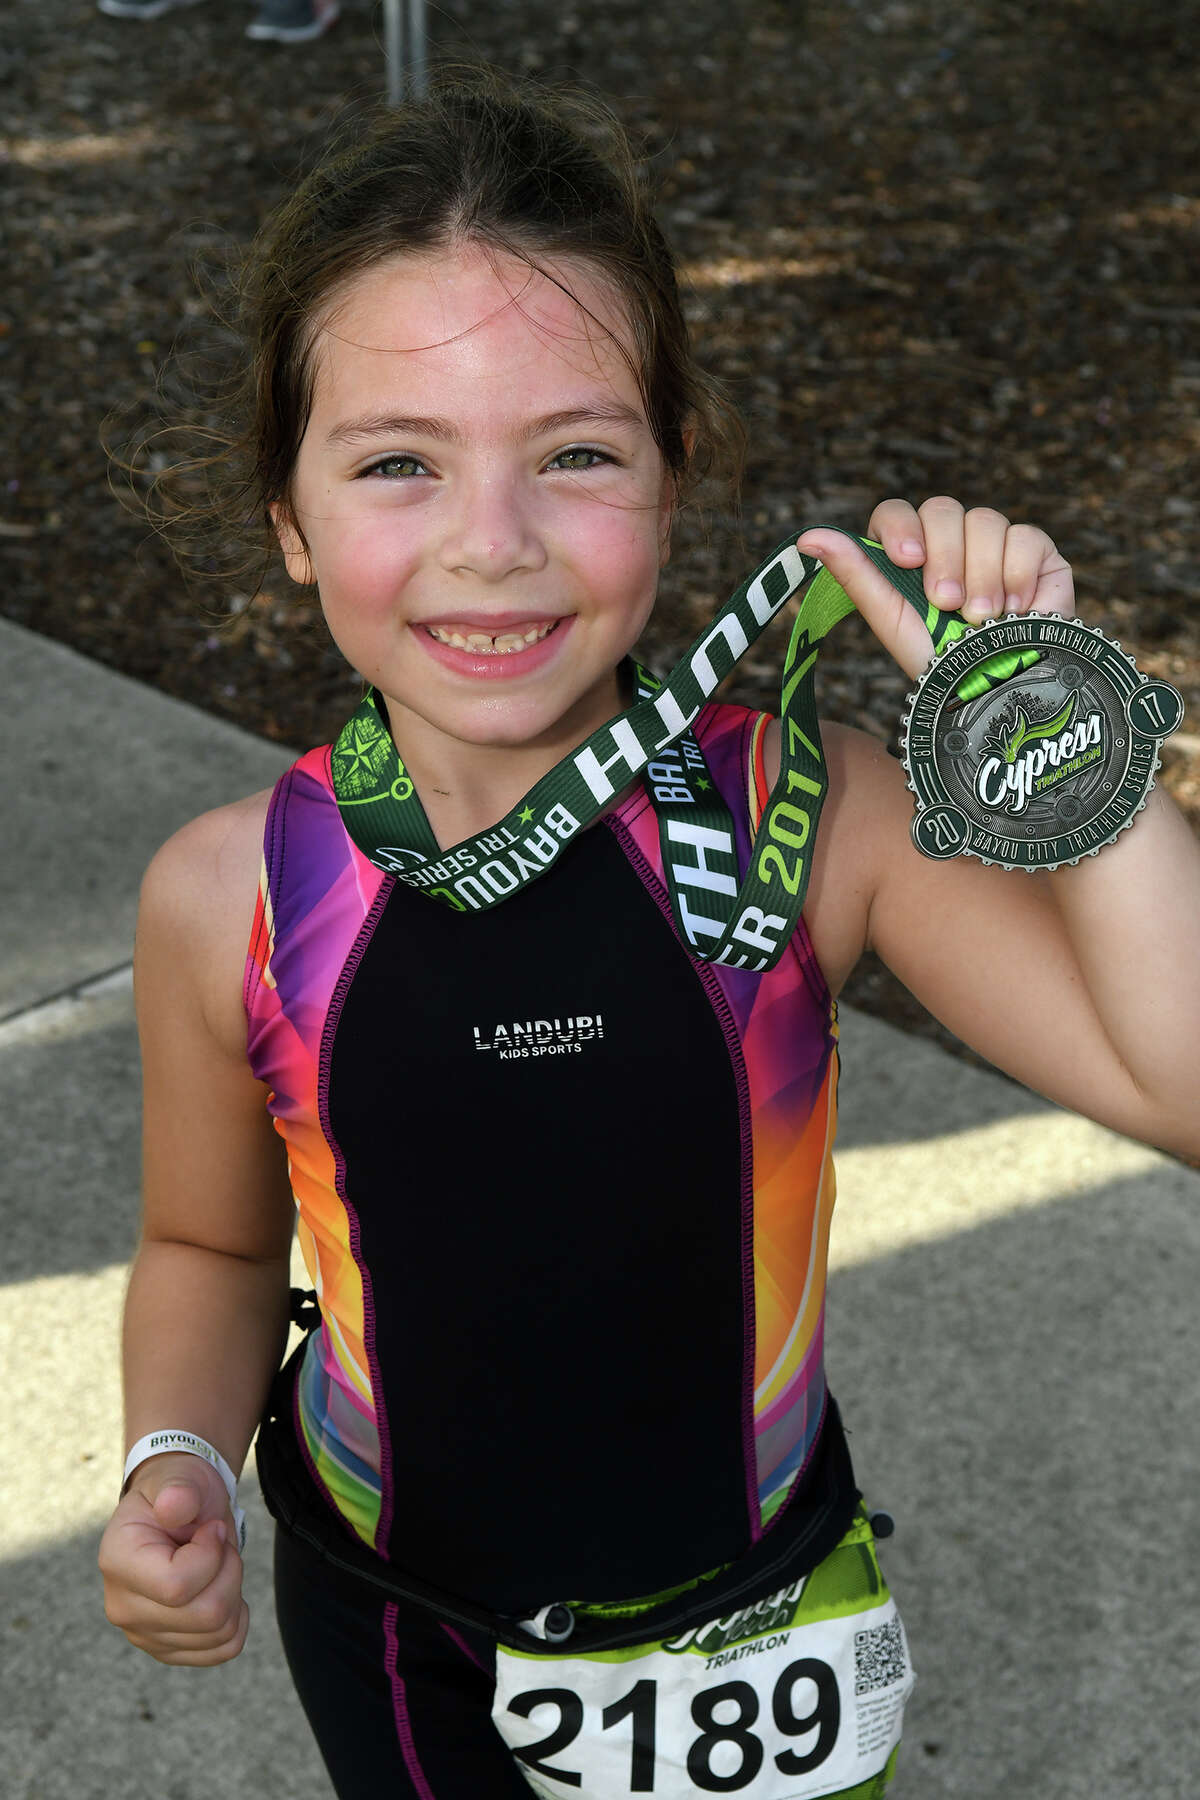 Louise Galo, 7, of Cypress and a 2nd grader at Wells Elem., shows off her medal after completing the Cypress Youth Triathlon at the Lakeland Activity Center in Cypress on July 29, 2017. (Photo by Jerry Baker/Freelance)